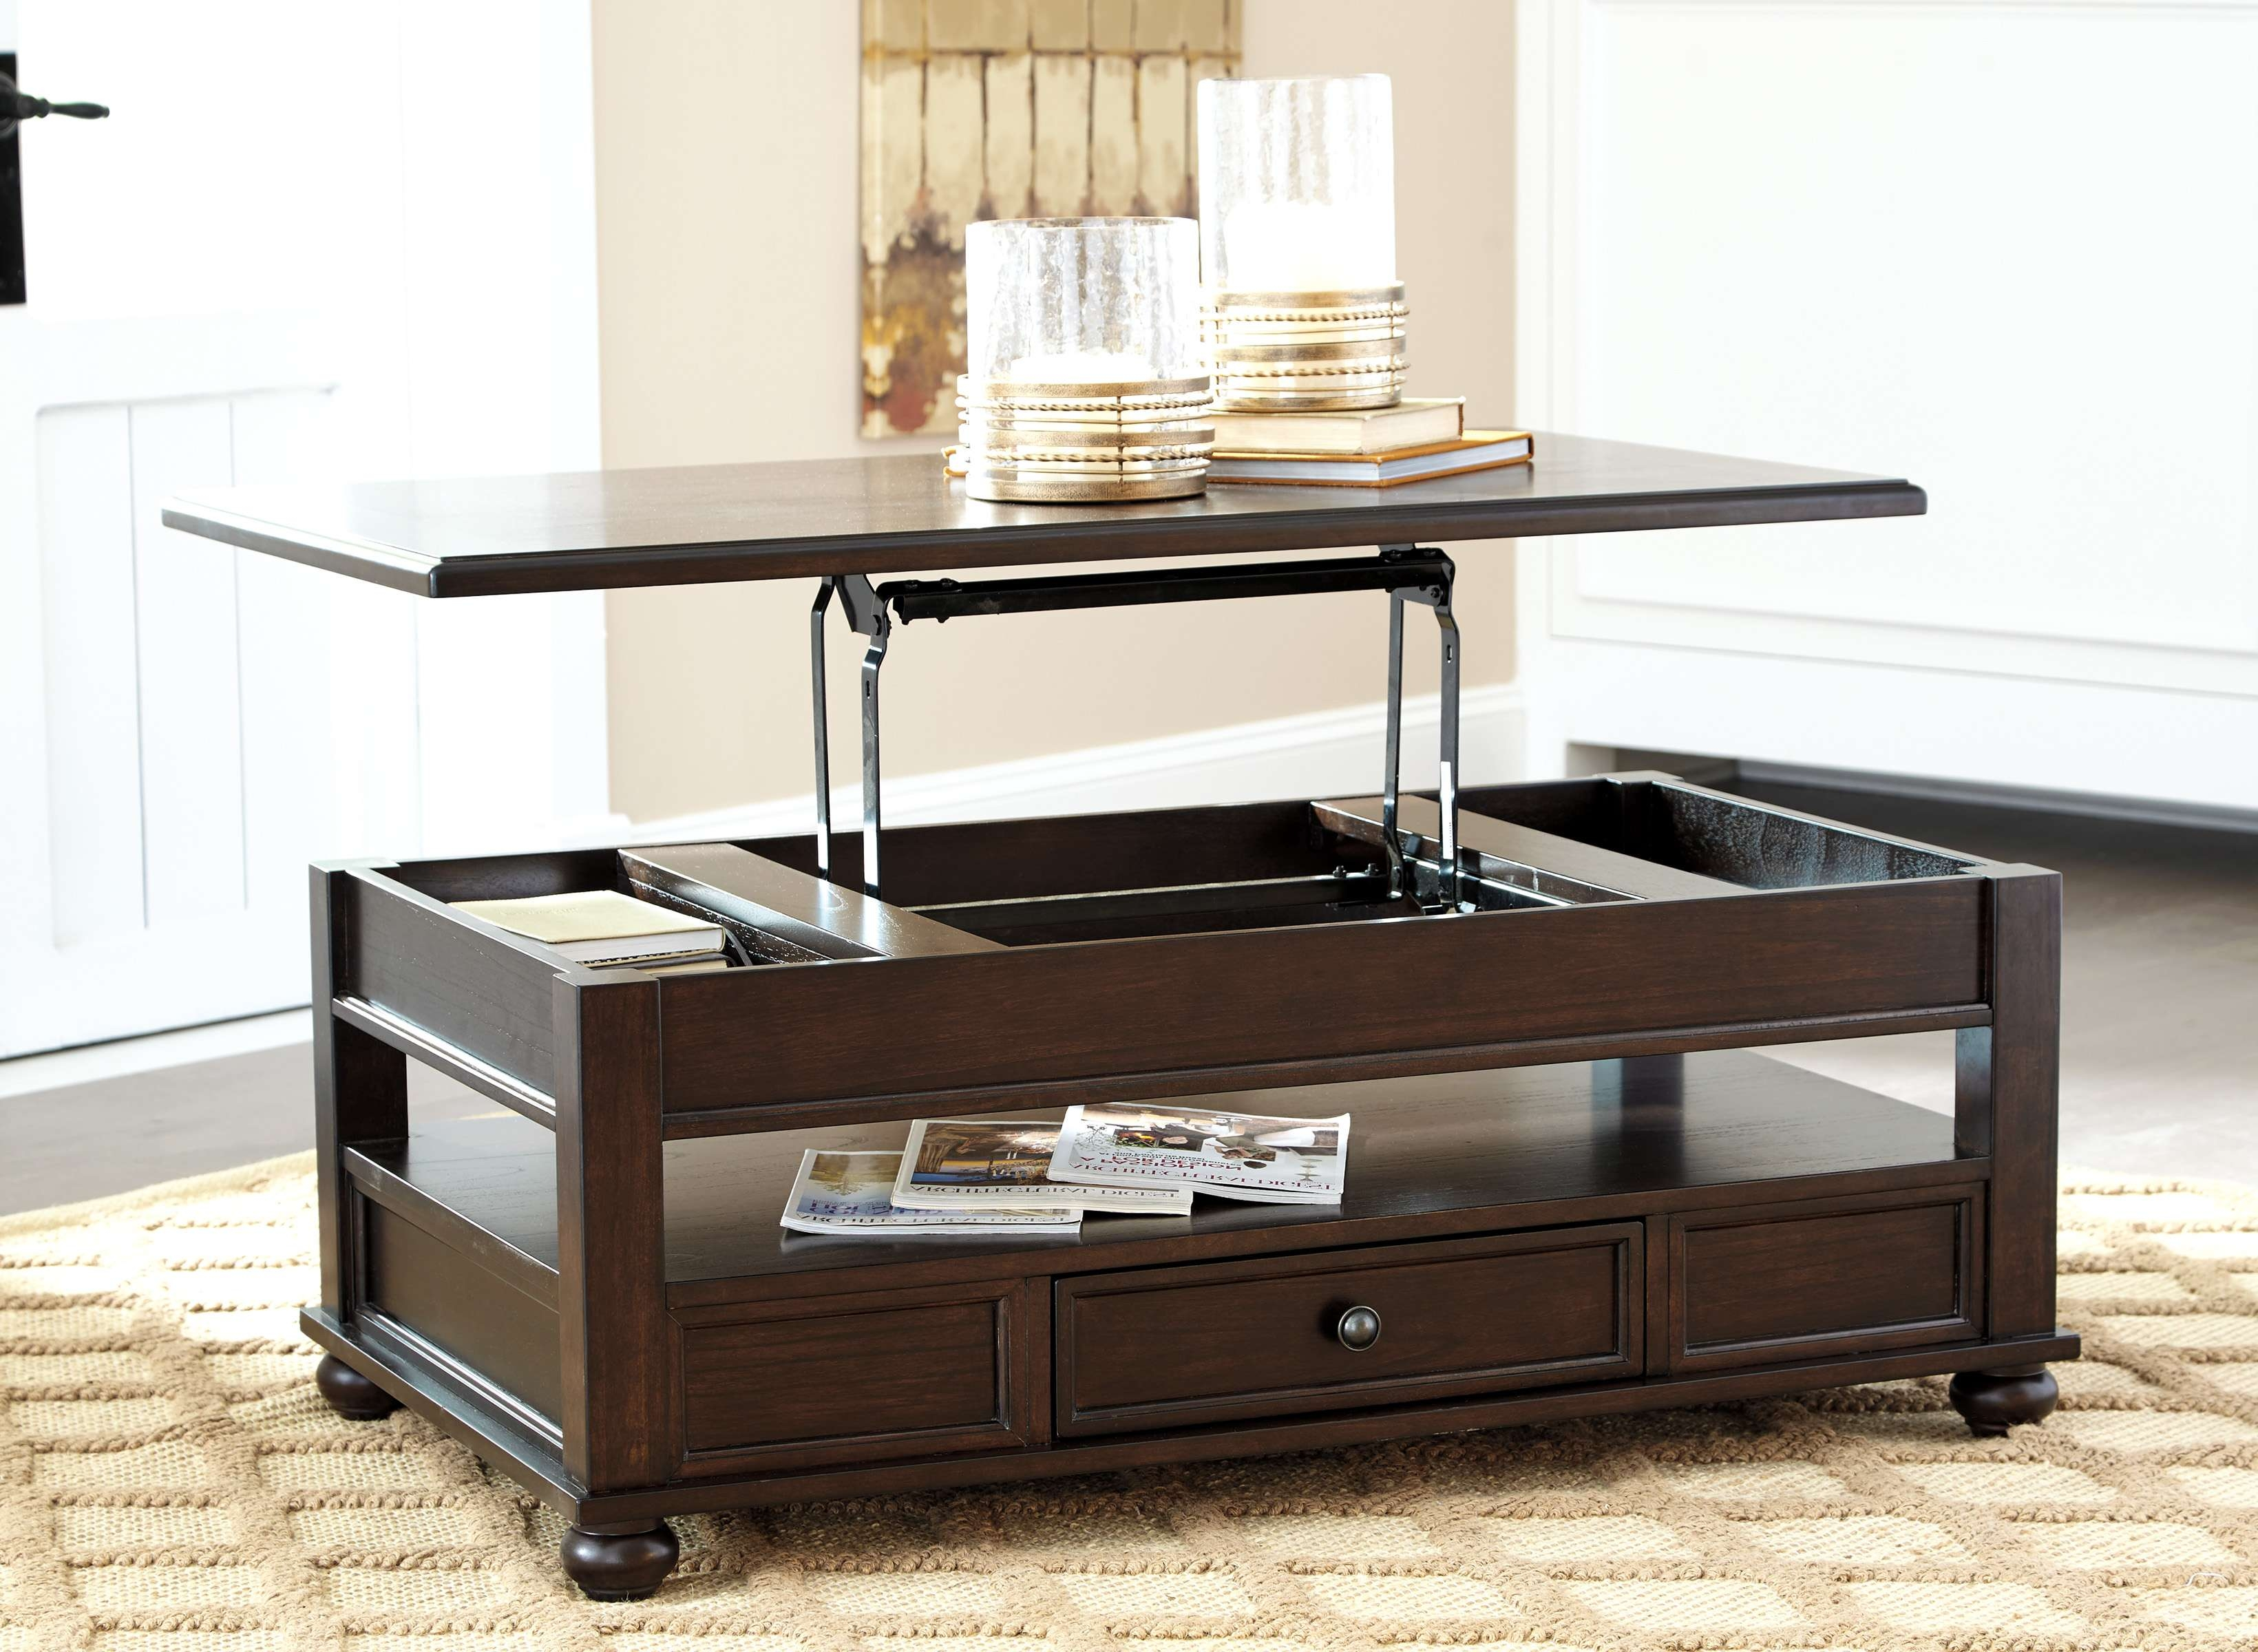 Coffee Tables : Simple Table With Stools And Storage Cube Coffee Within Well Liked Dark Brown Coffee Tables (View 7 of 20)